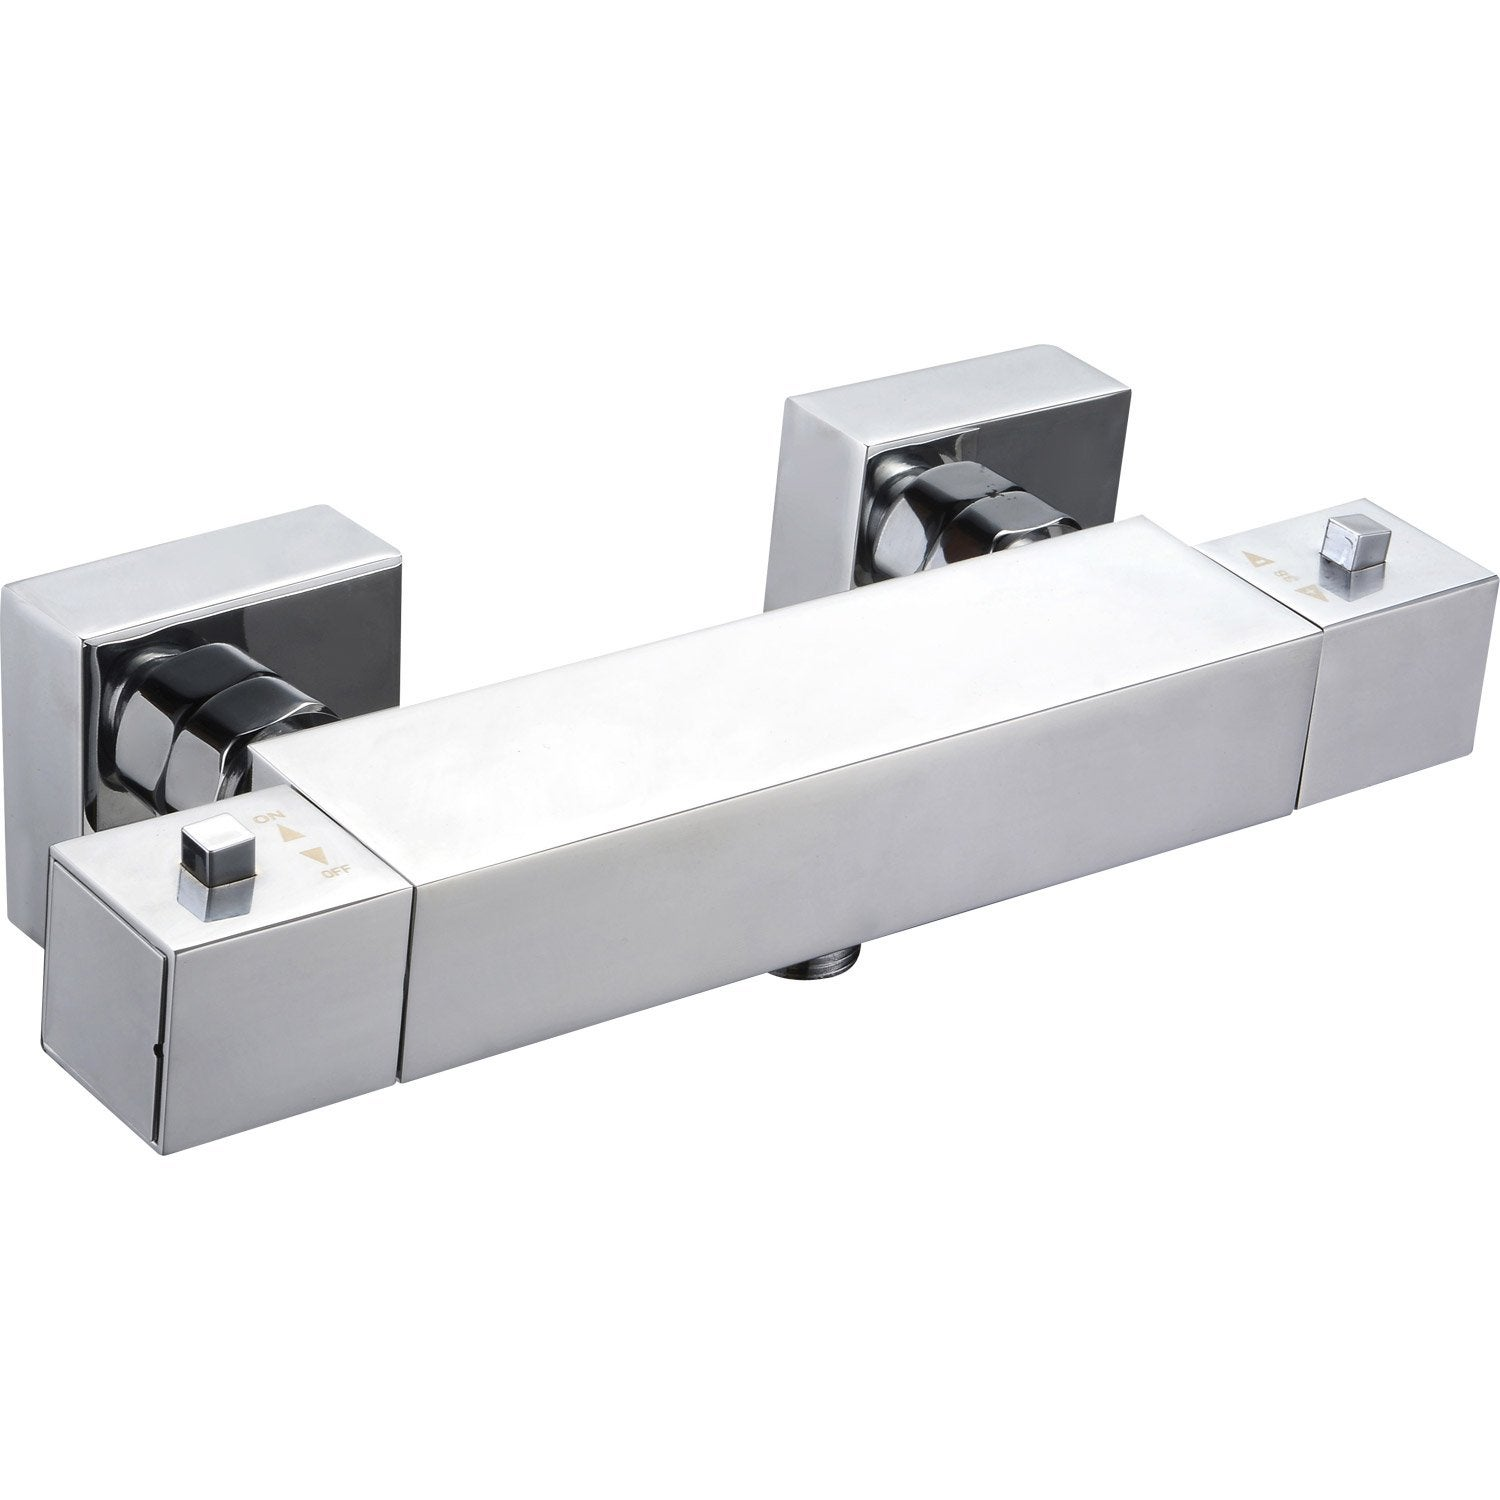 Mitigeur thermostatique de douche chrom sensea luka for Limpiacristales leroy merlin